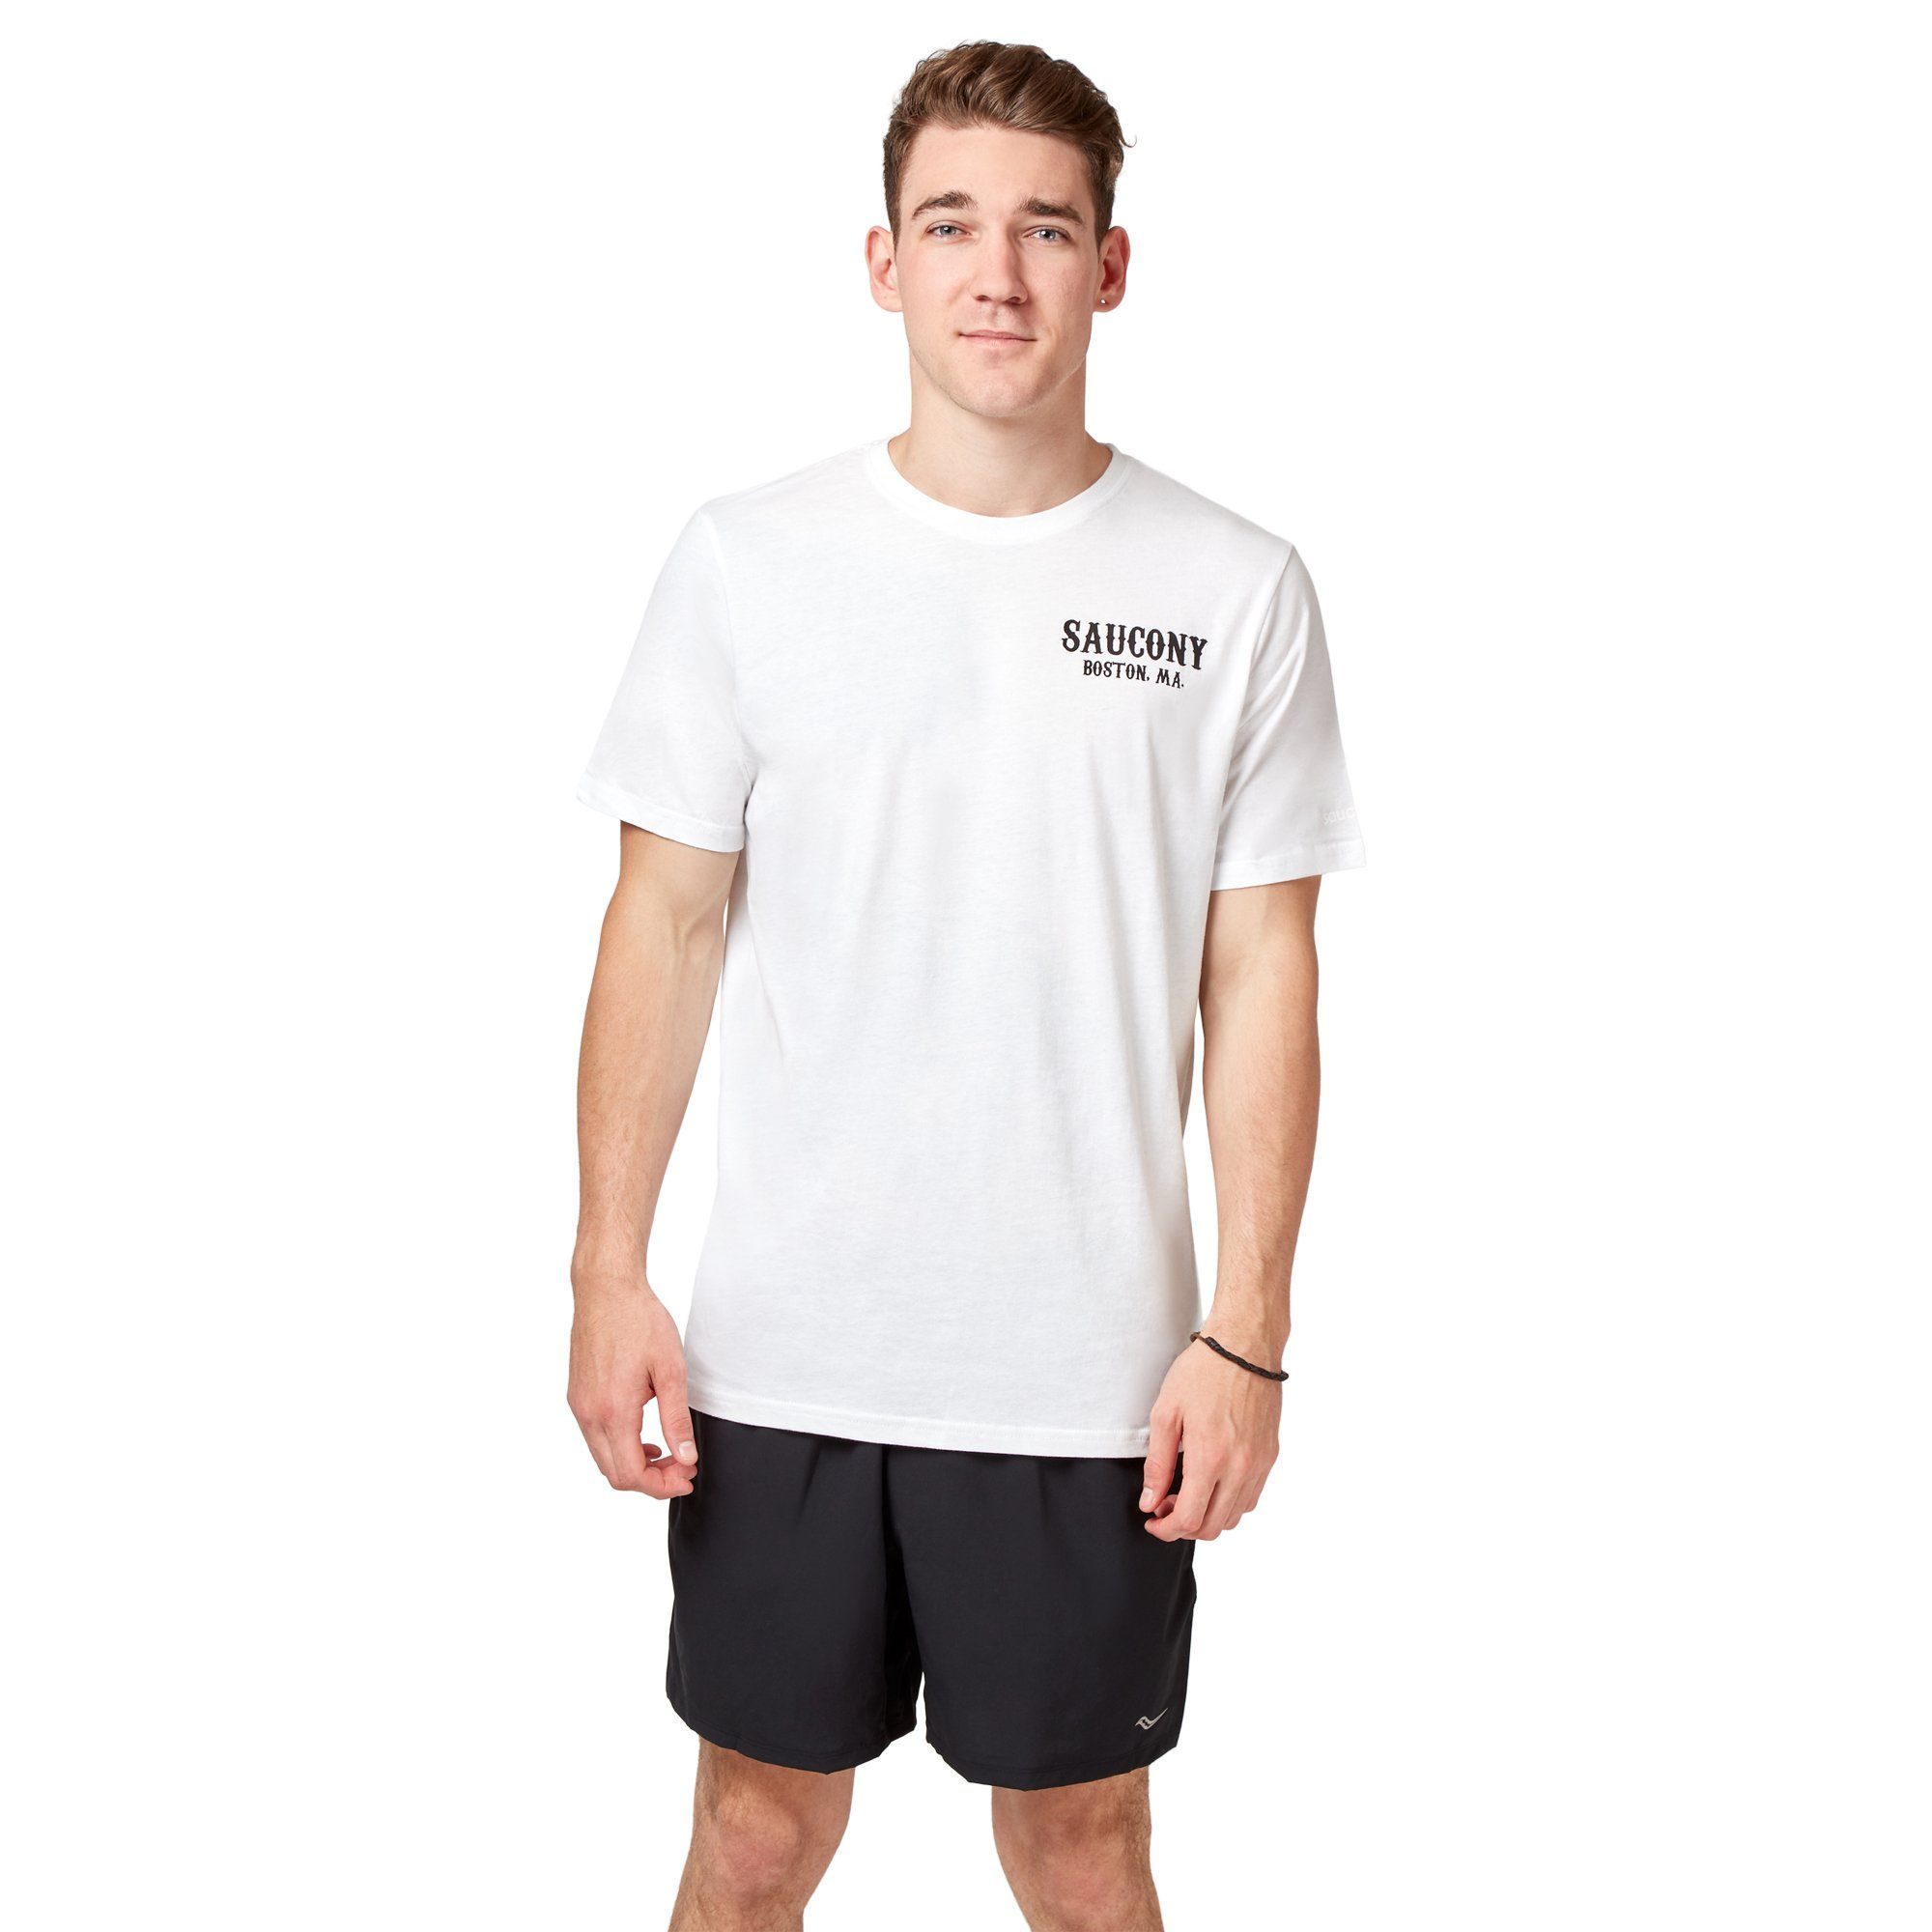 Saucony Boston MA Tee - White Apparel Saucony